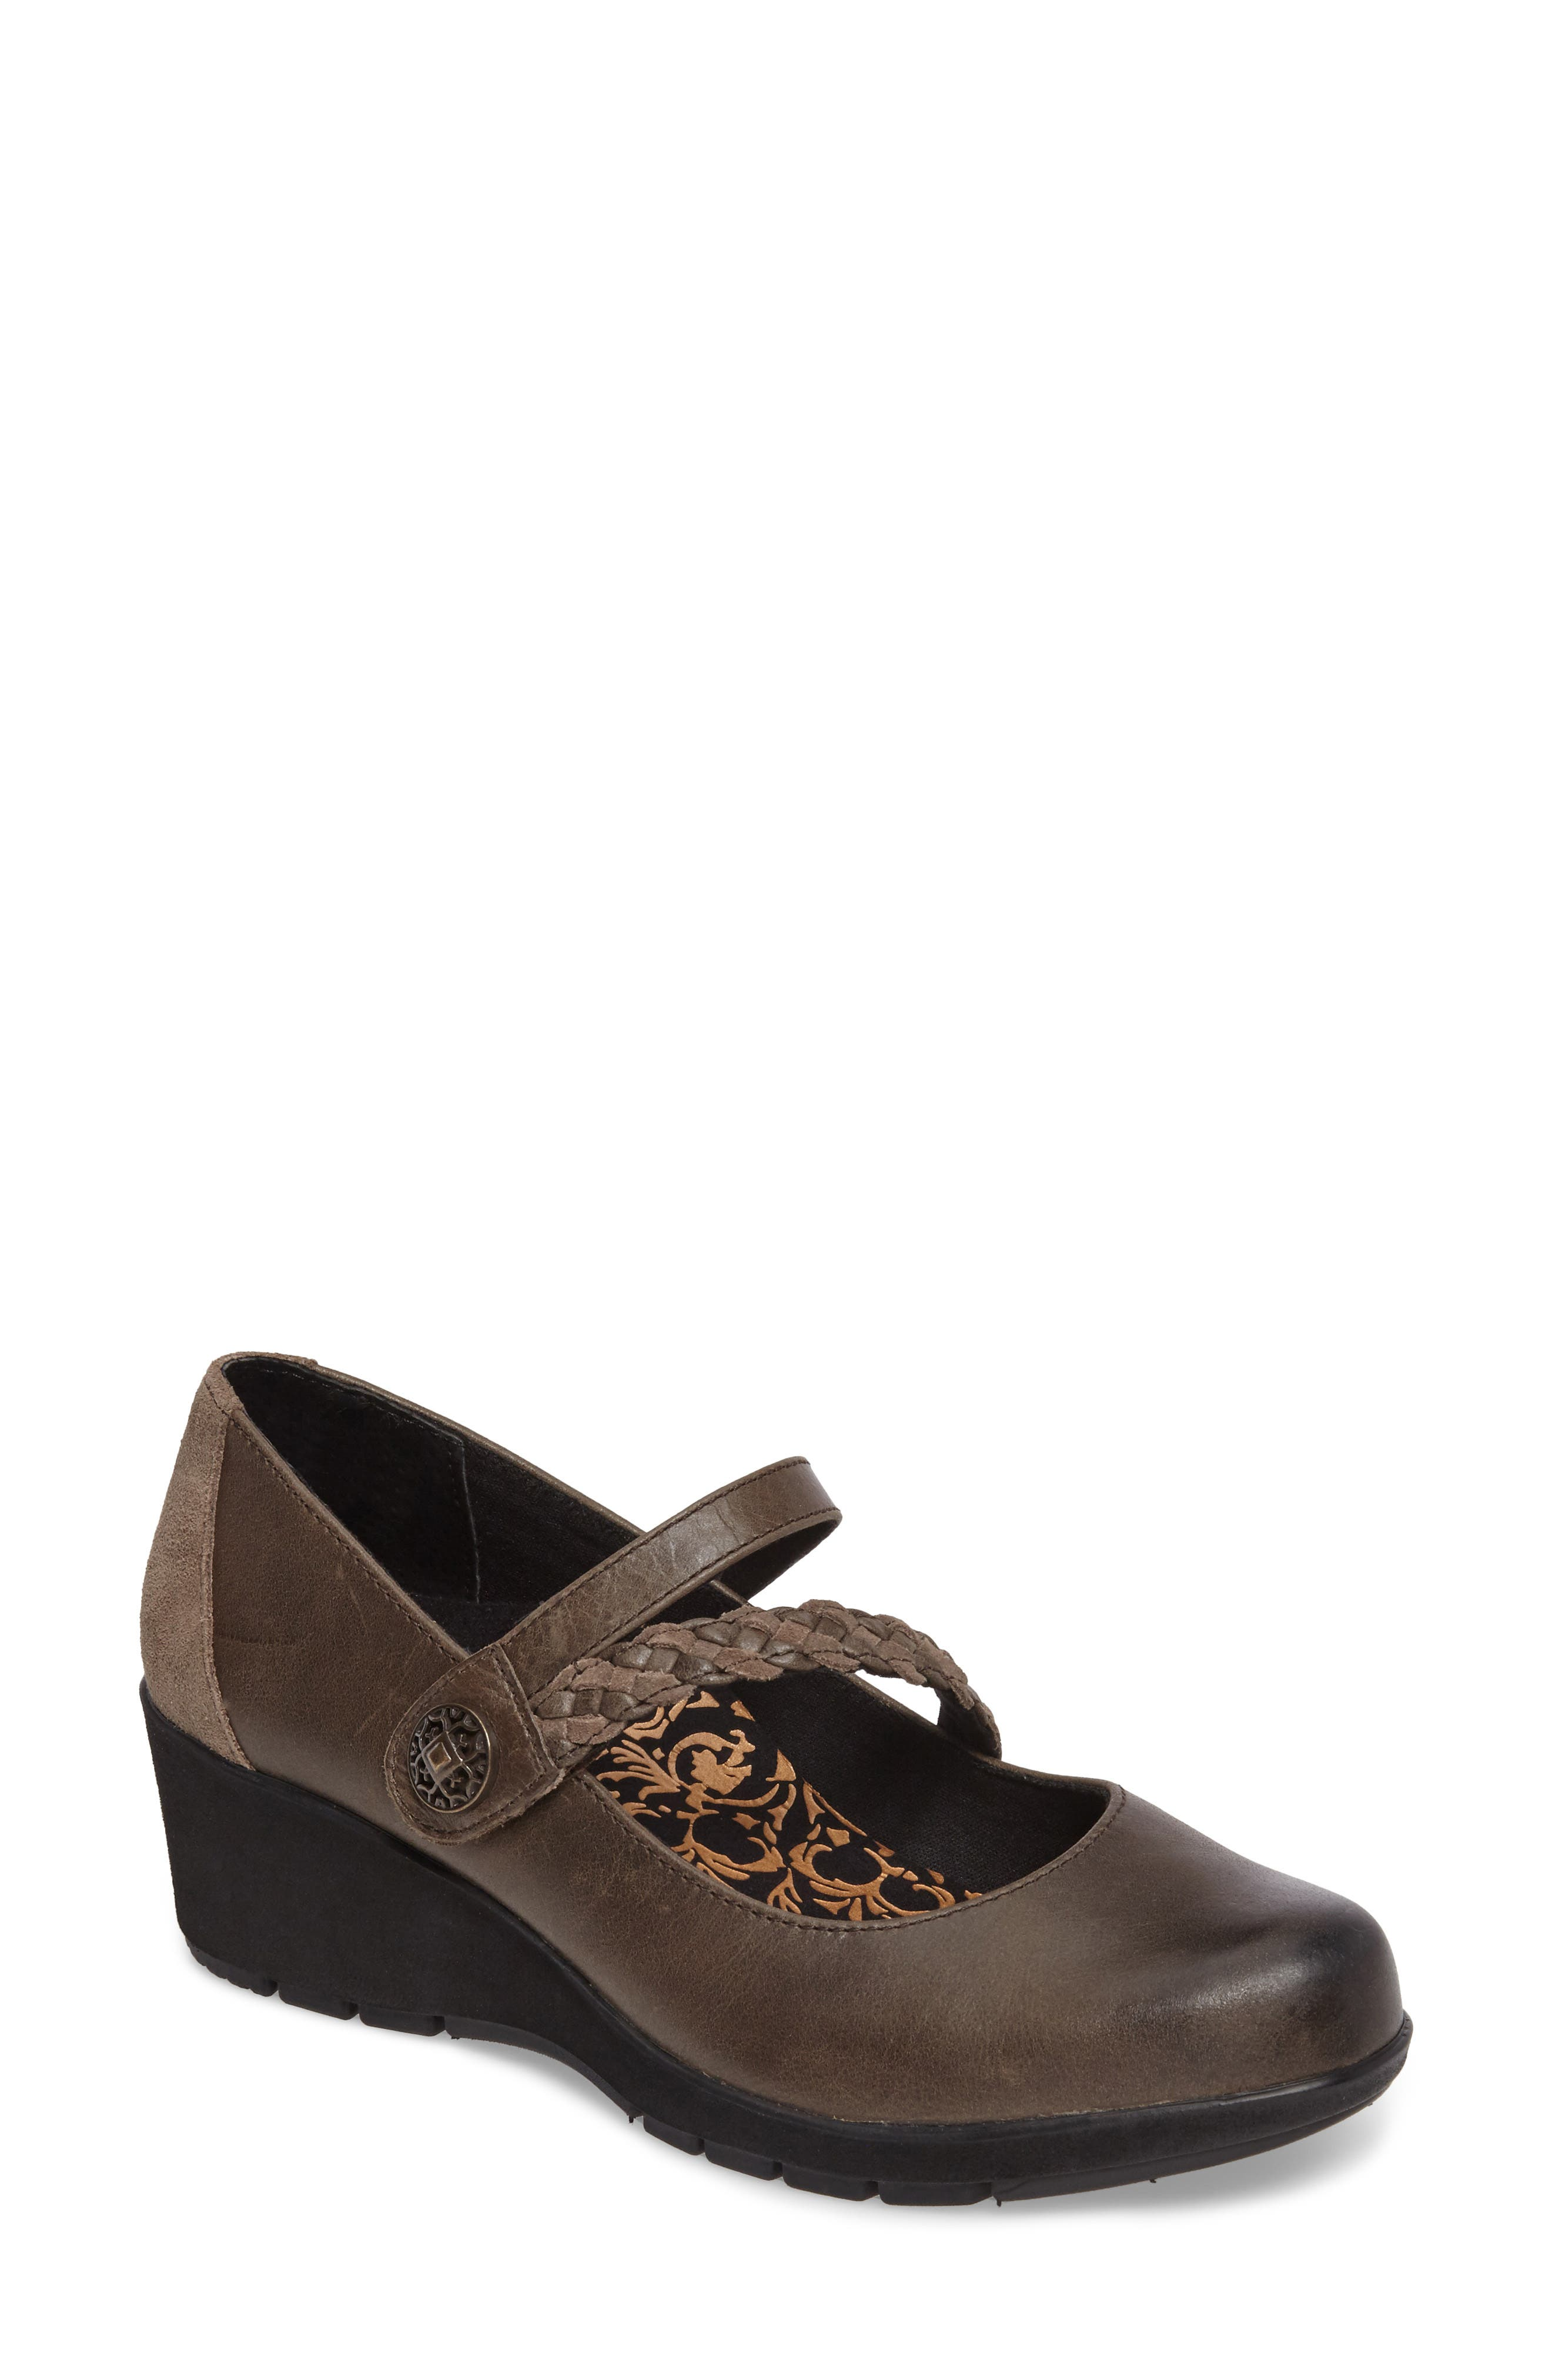 AETREX, Ivy Mary Jane Wedge, Main thumbnail 1, color, IRON LEATHER